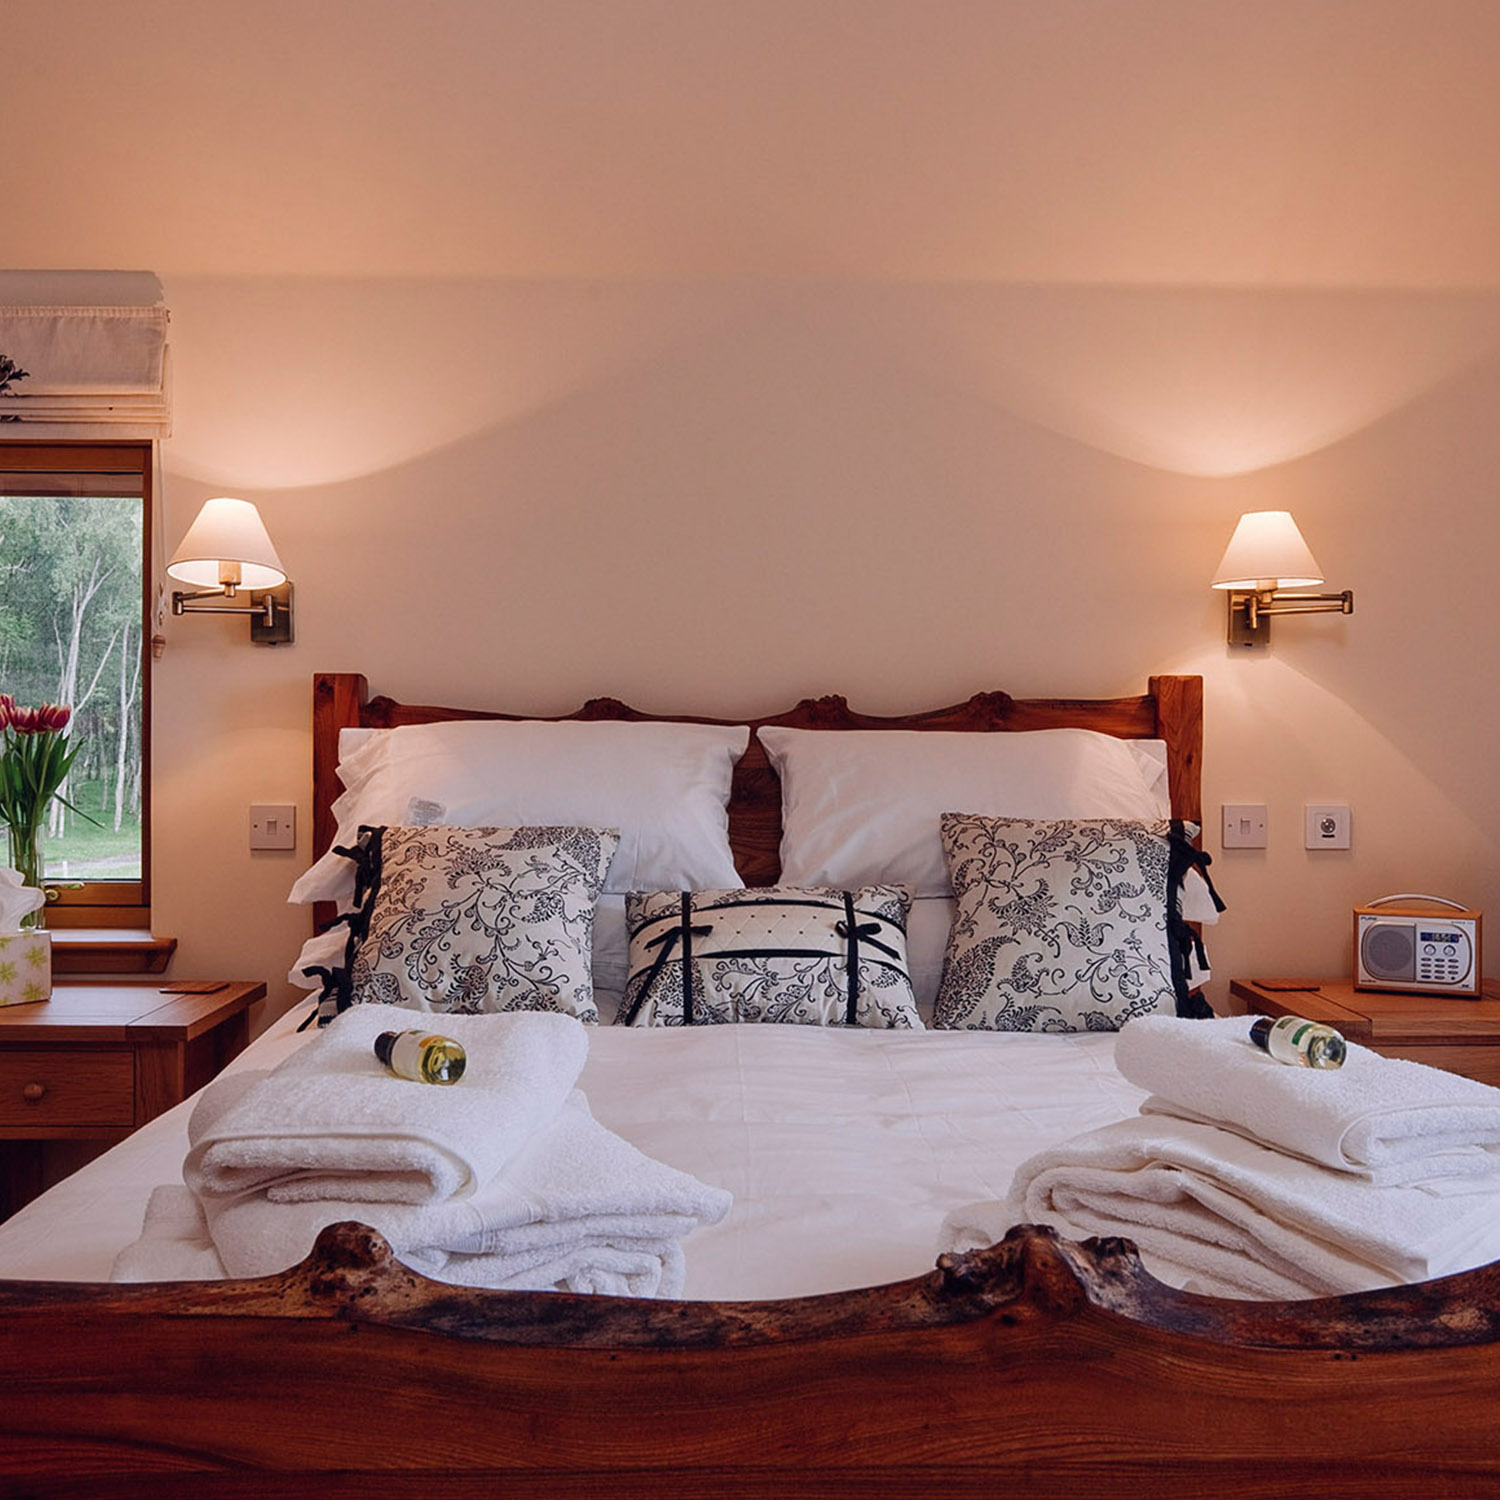 Luxury king-sized bedroom, 5 star Lodge near Inverness